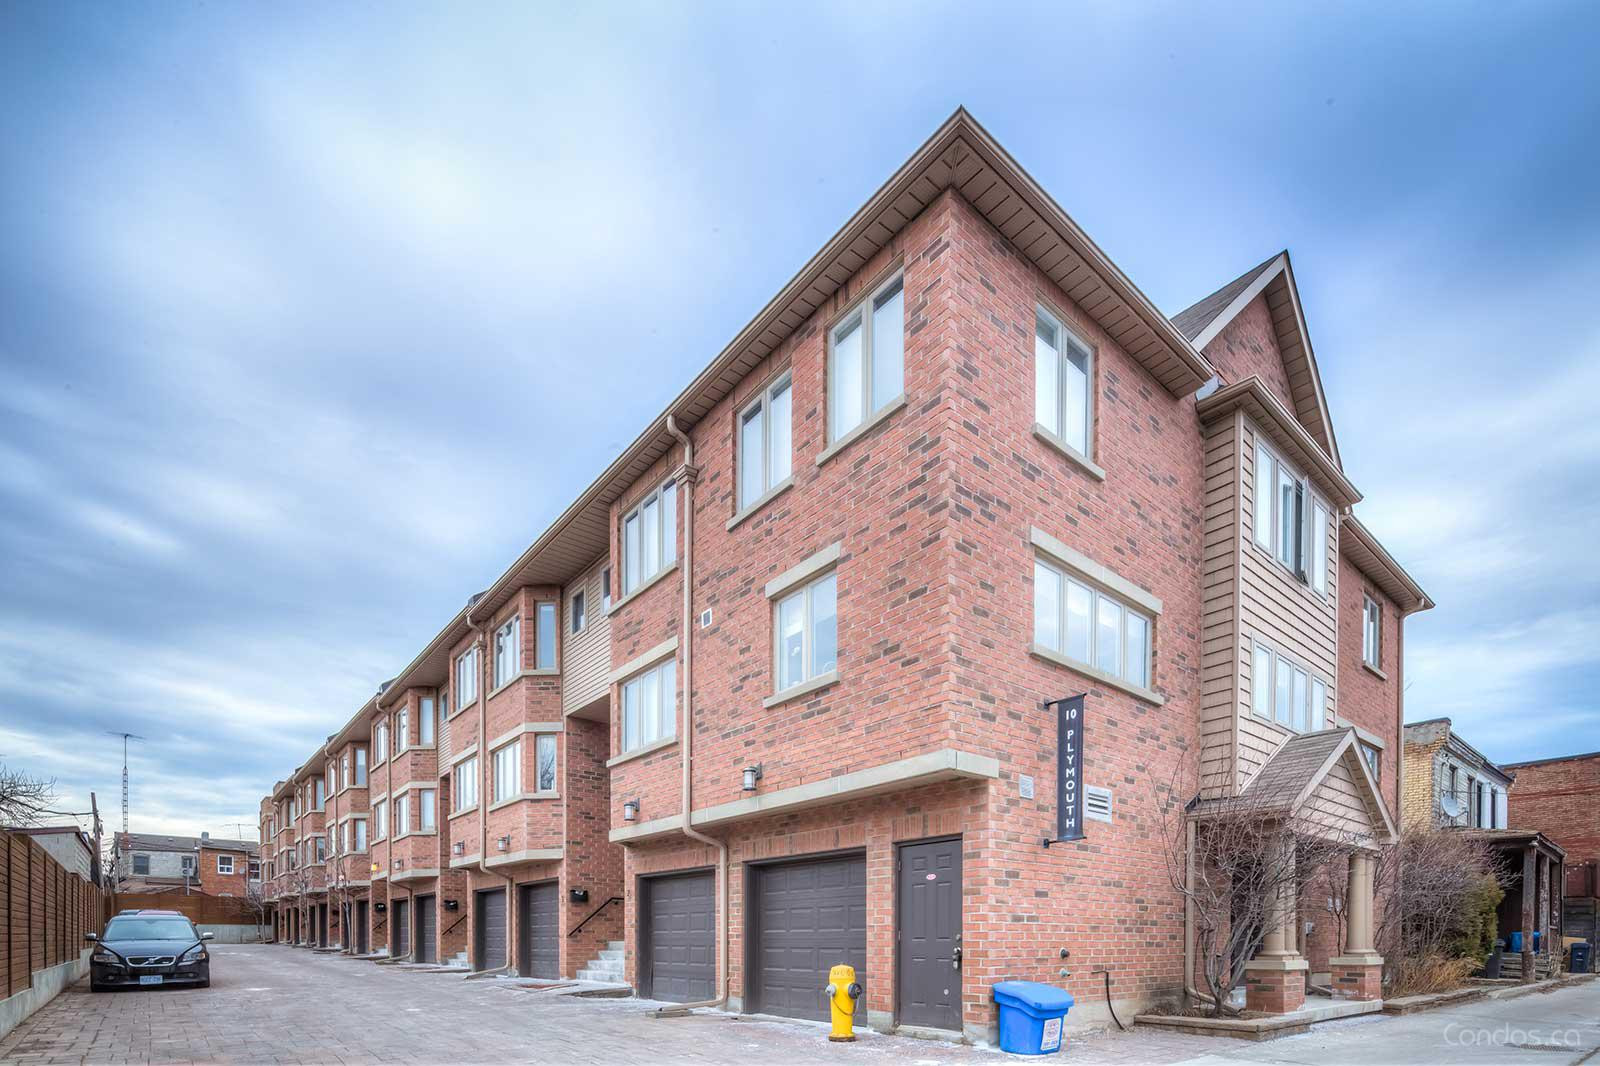 Townhomes of Plymouth Avenue at 10 Plymouth Ave, Toronto 0